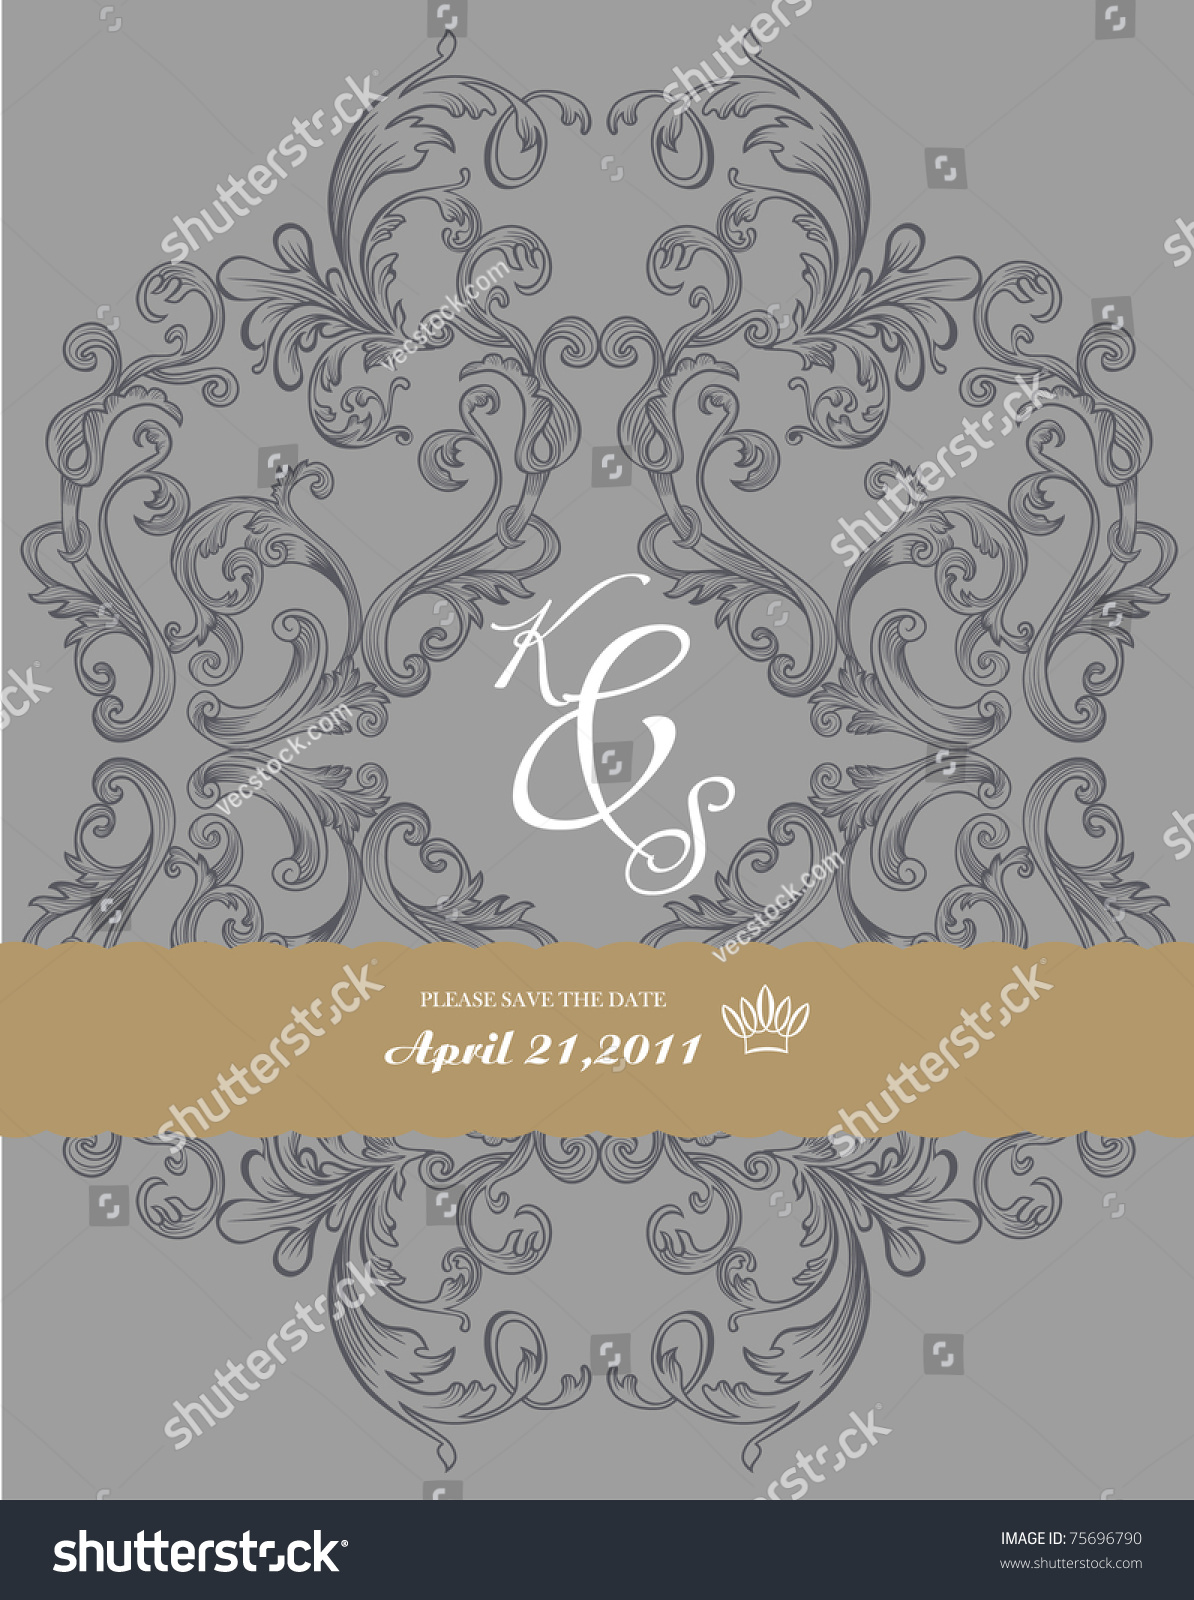 Book Cover Design Elements : Antique paper with ornate elements on dark gray background